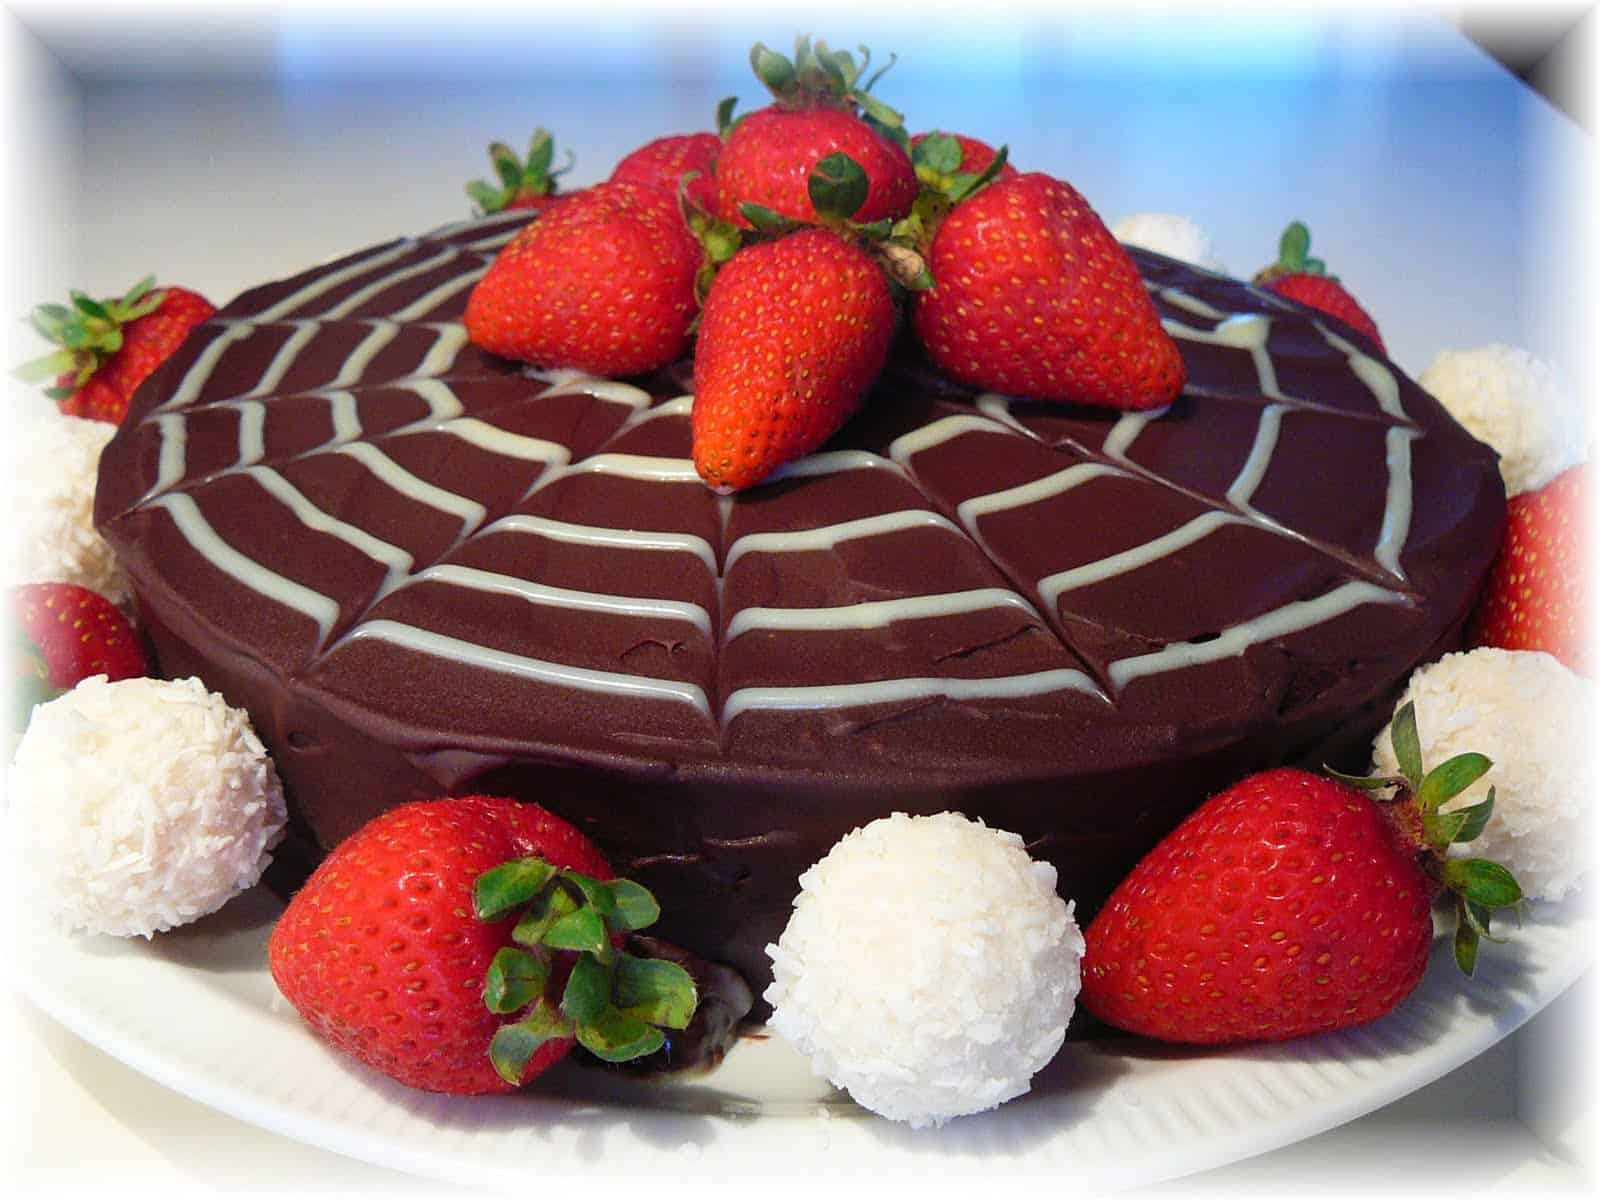 chocolate cake with white spider web design and strawberries on top